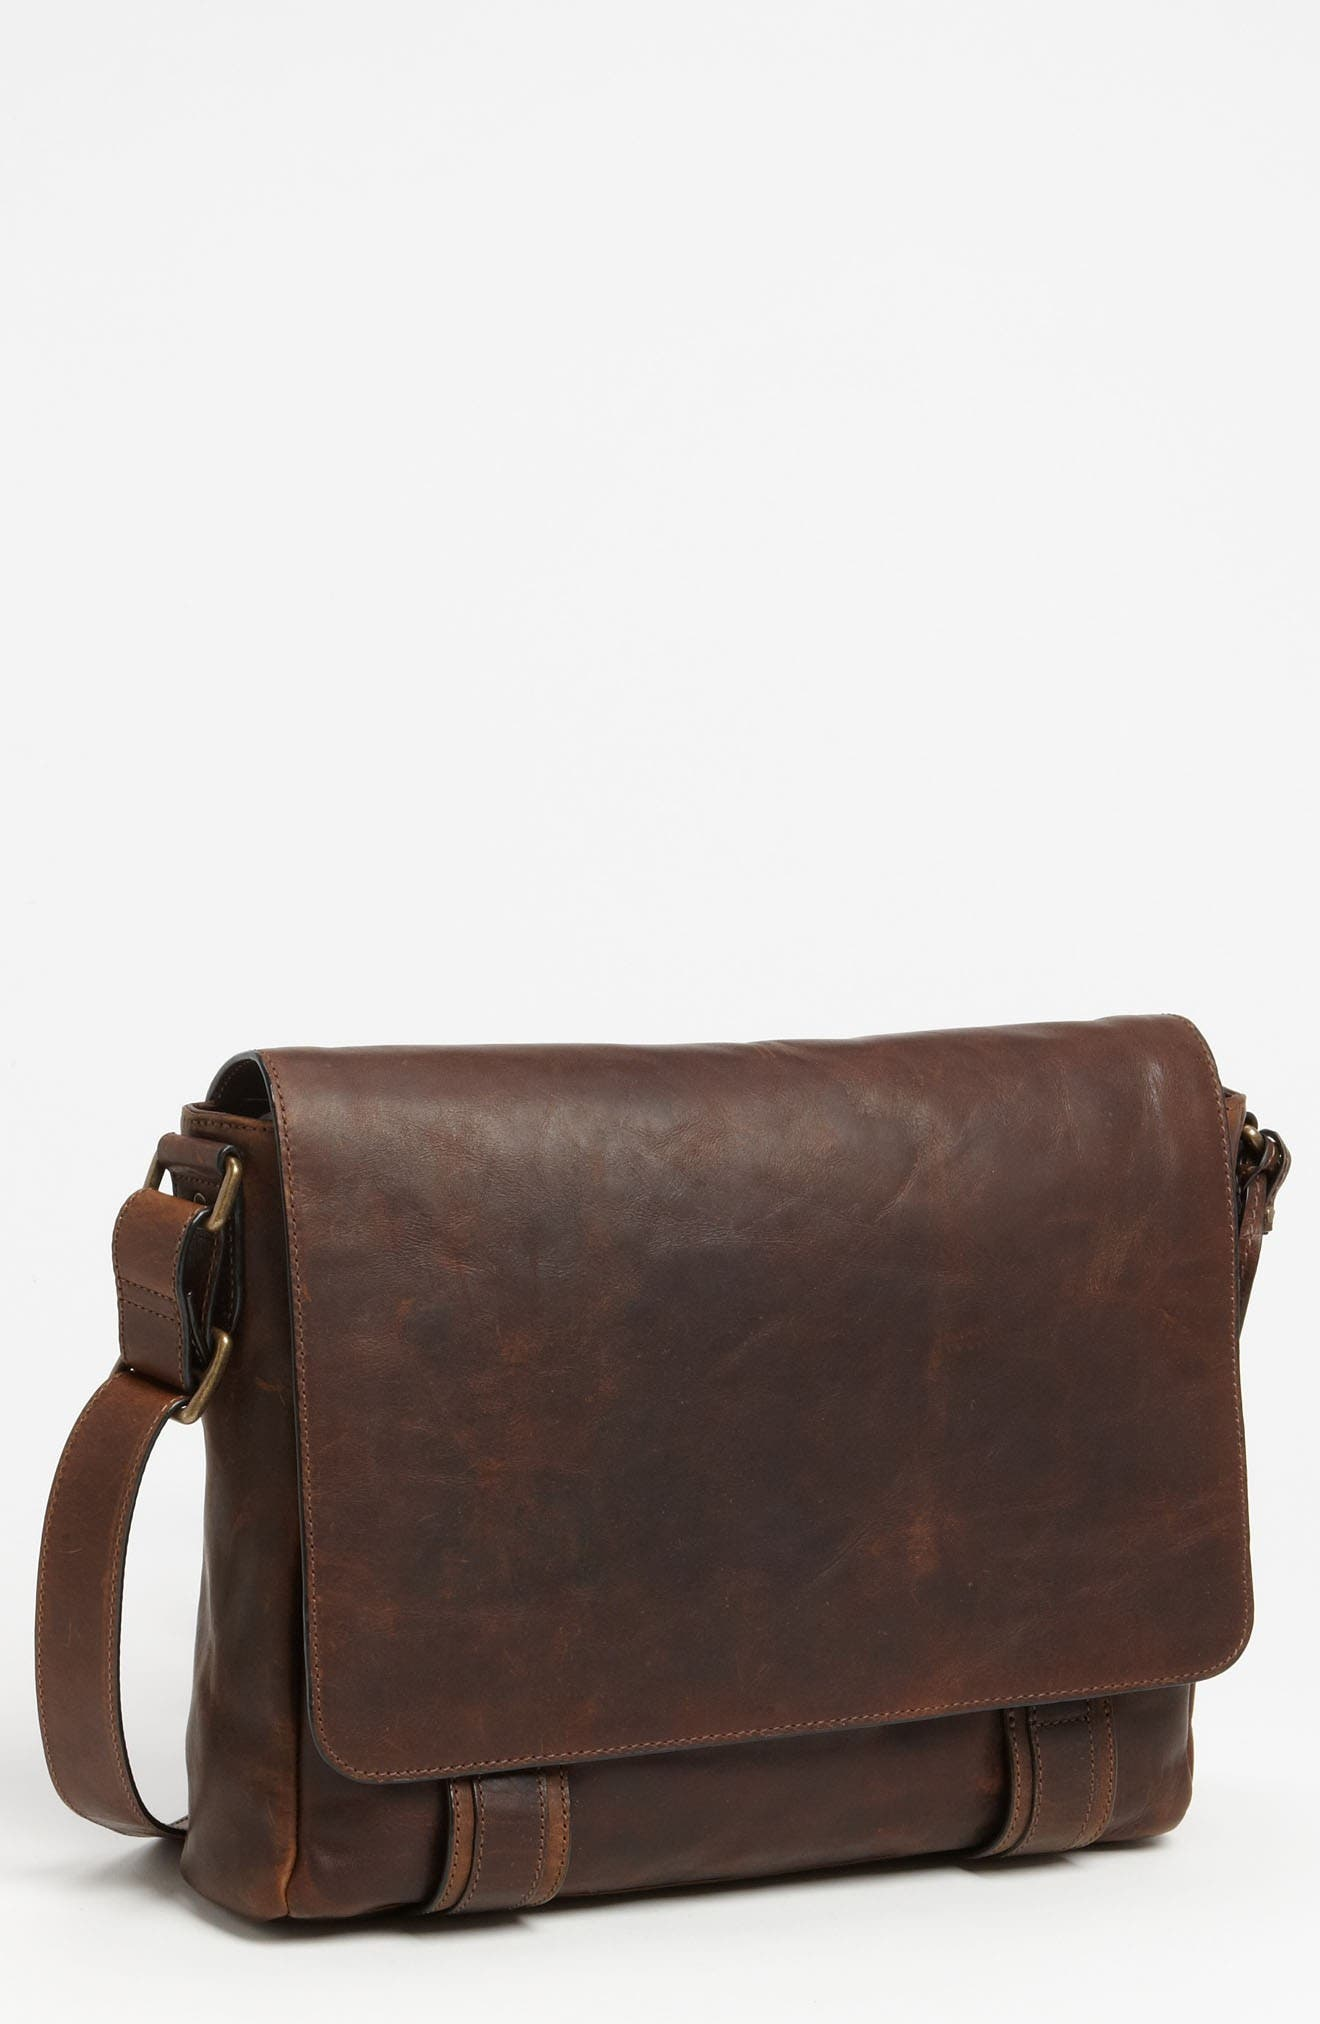 'Logan' Messenger Bag,                             Main thumbnail 1, color,                             Antique Dark Brown